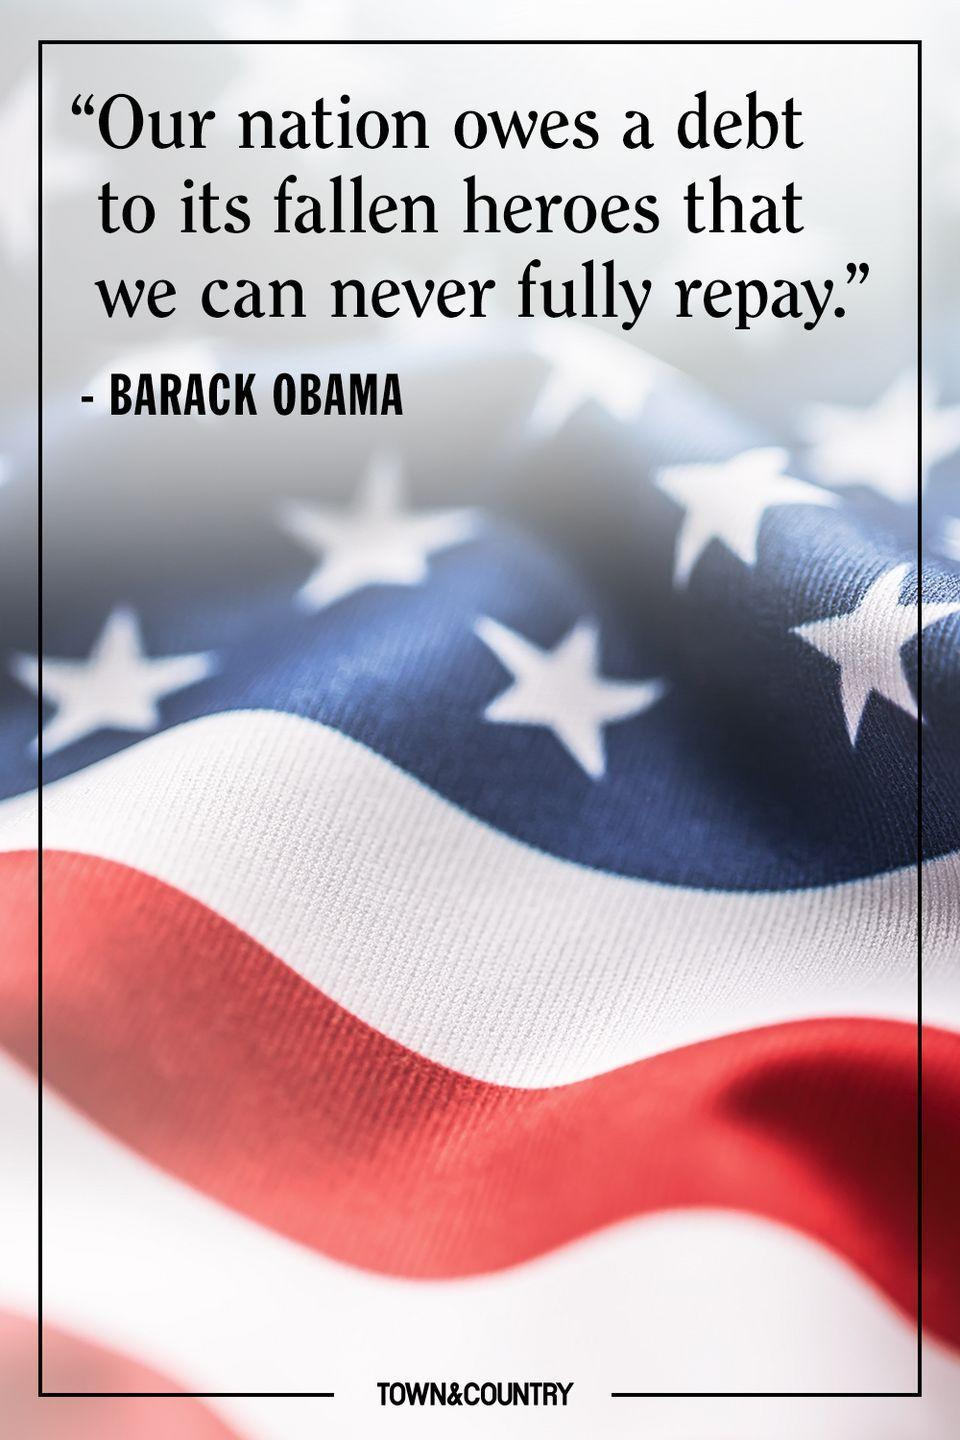 "<p>""Our nation owes a debt to its fallen heroes that we can never fully repay.""</p><p>– Barack Obama</p>"